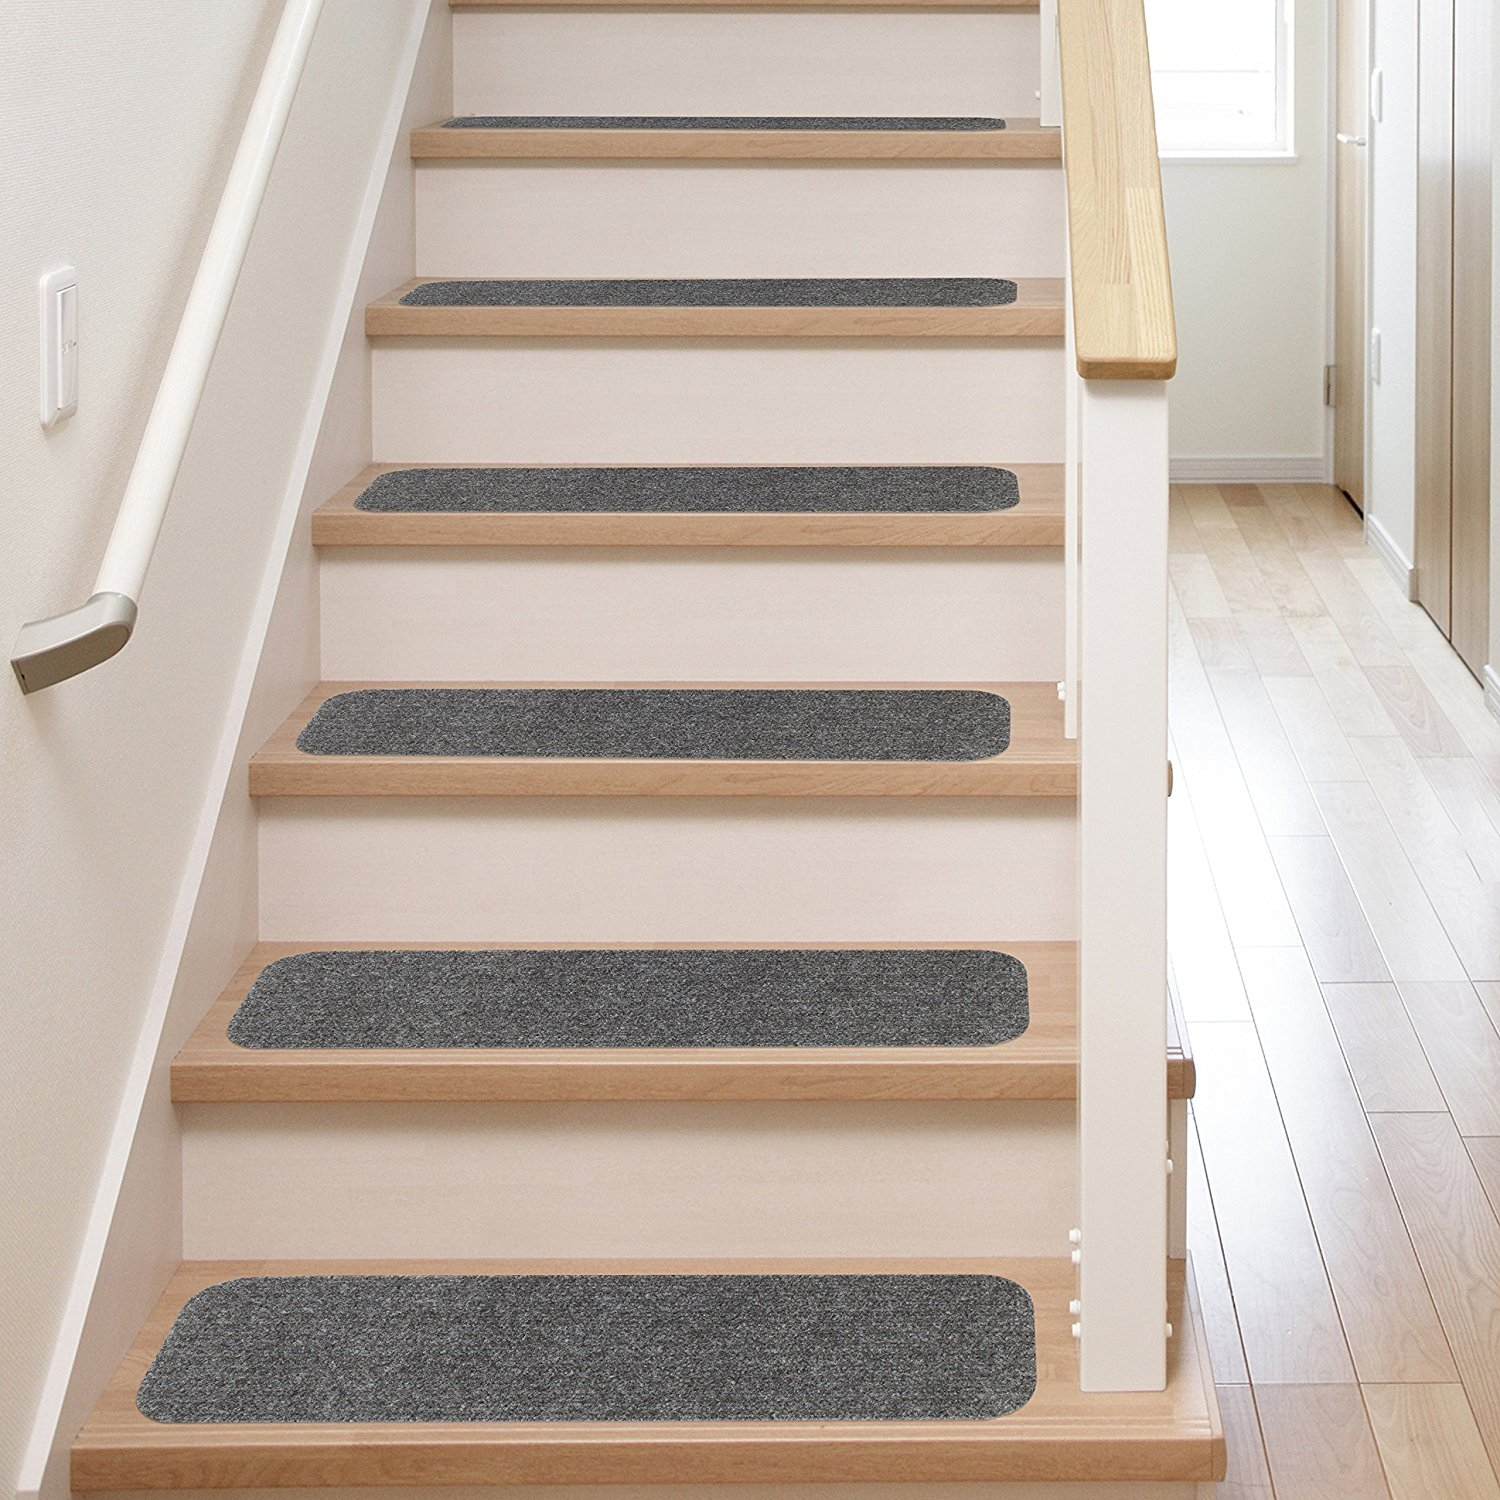 13 Stair Treads Non Slip Carpet Pads Easy Tape Installation Inside Non Slip Stair Treads Carpets (View 5 of 15)